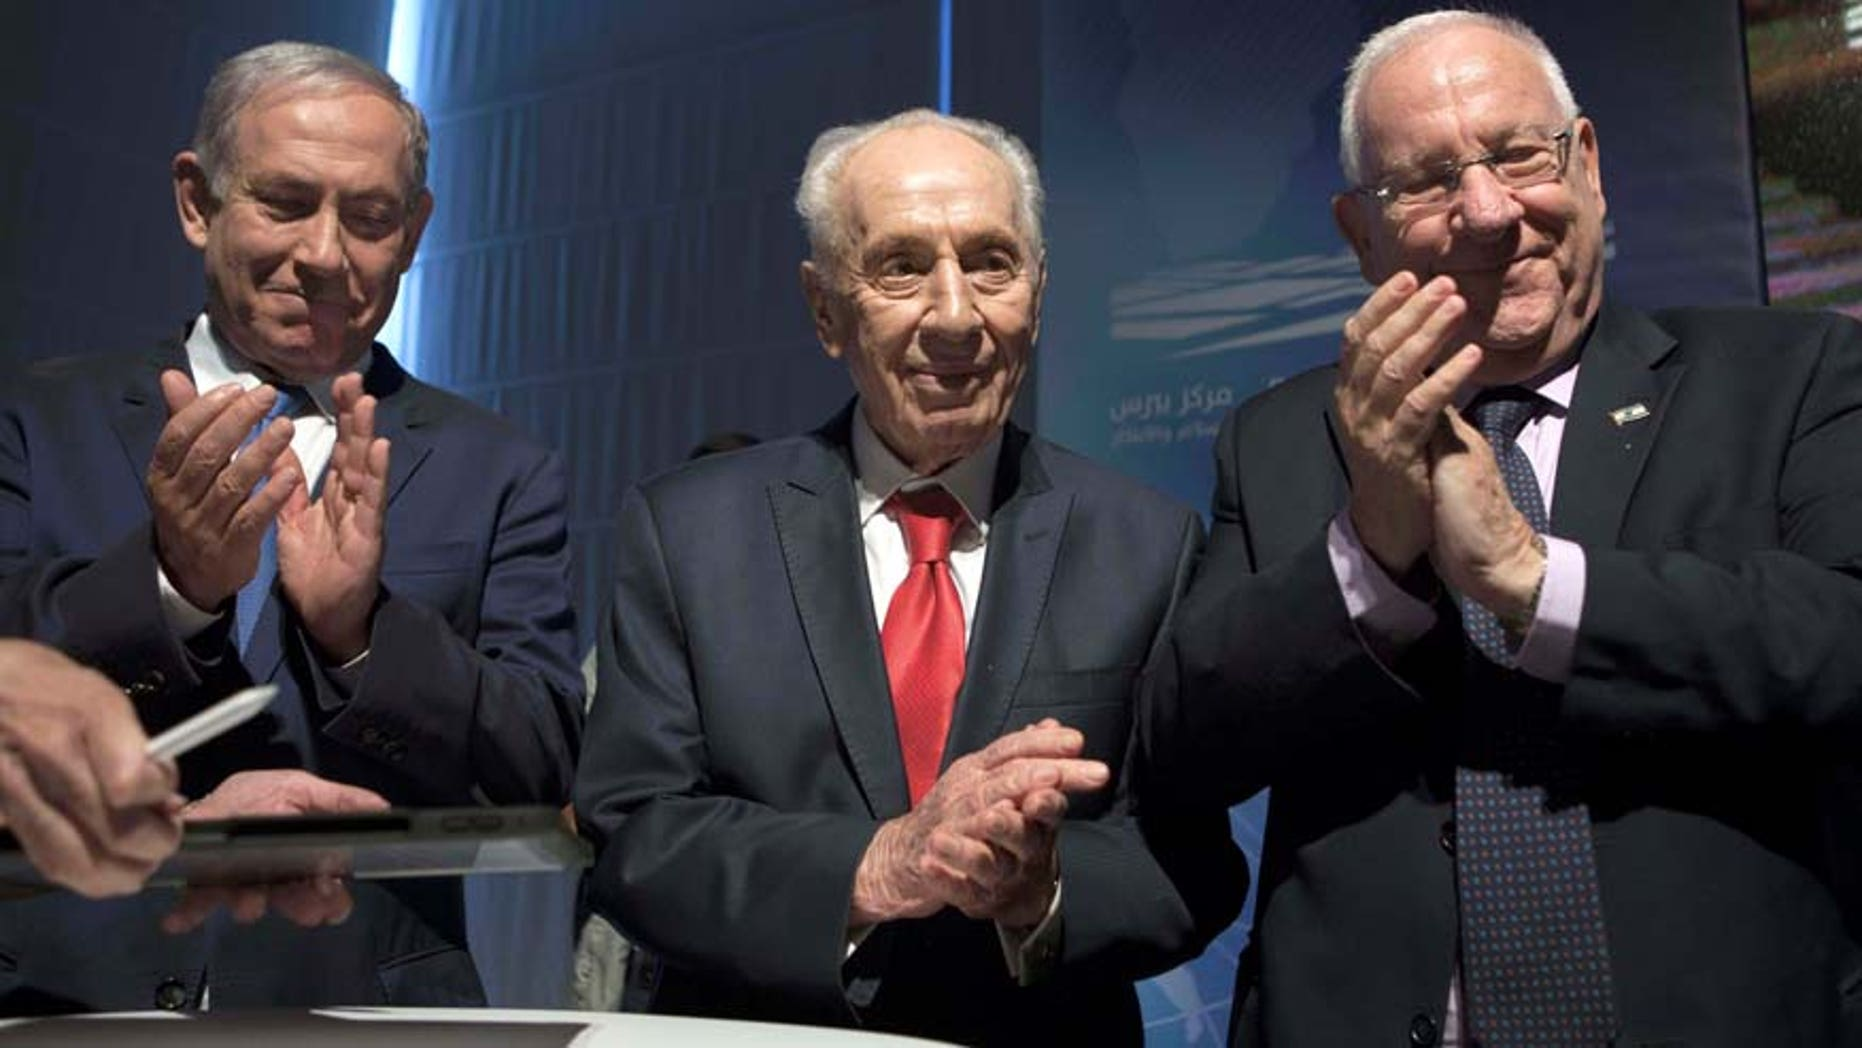 July 21, 2016: Israeli Prime Minister Benjamin Netanyahu, left, former Israeli President Shimon Peres, center, and Israel's President Reuven Rivlin are seen during a ceremony at the Peres Center for Peace in Jaffa, Israel.